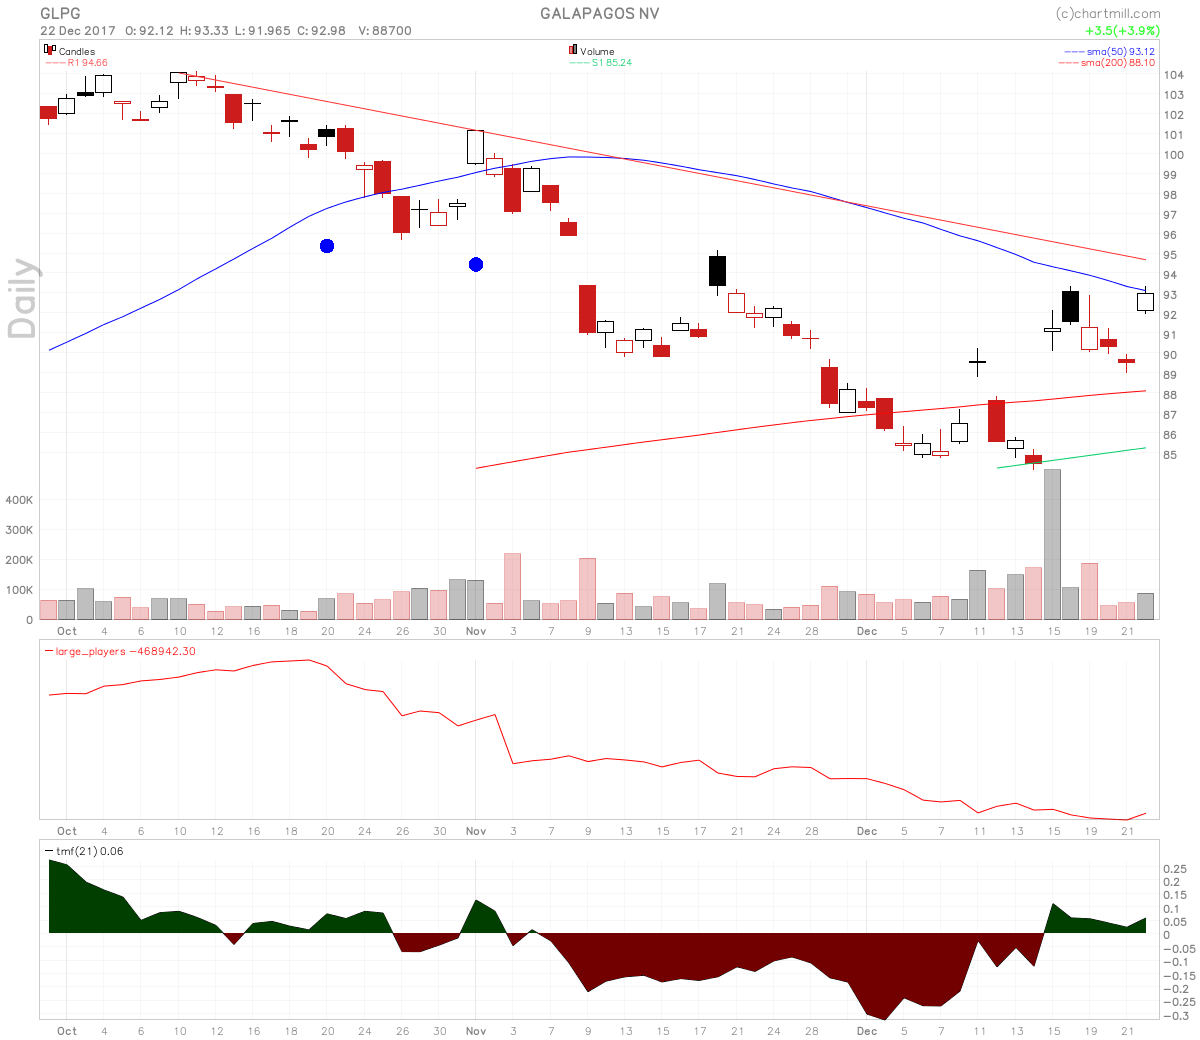 Hearing Rumors Gilead Is Looking To Acquire Galapagos Stock